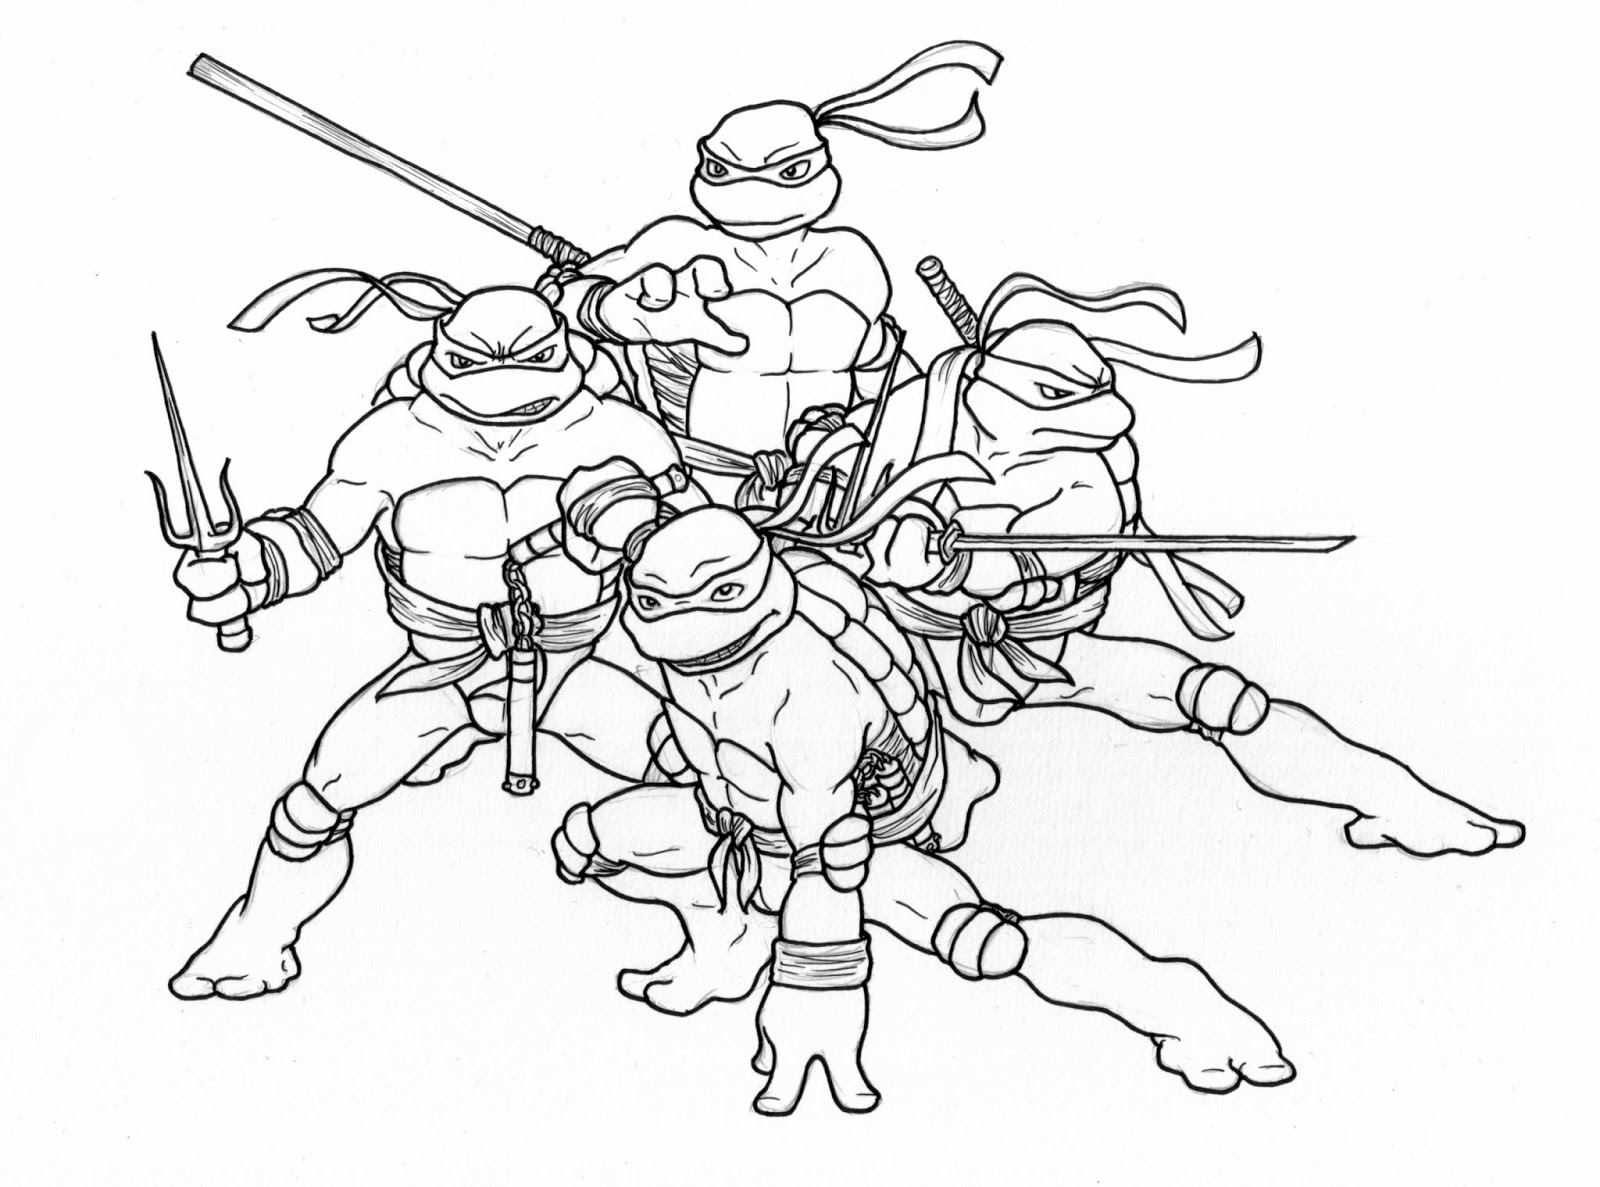 Stupendous image intended for ninja turtle printable colouring pages